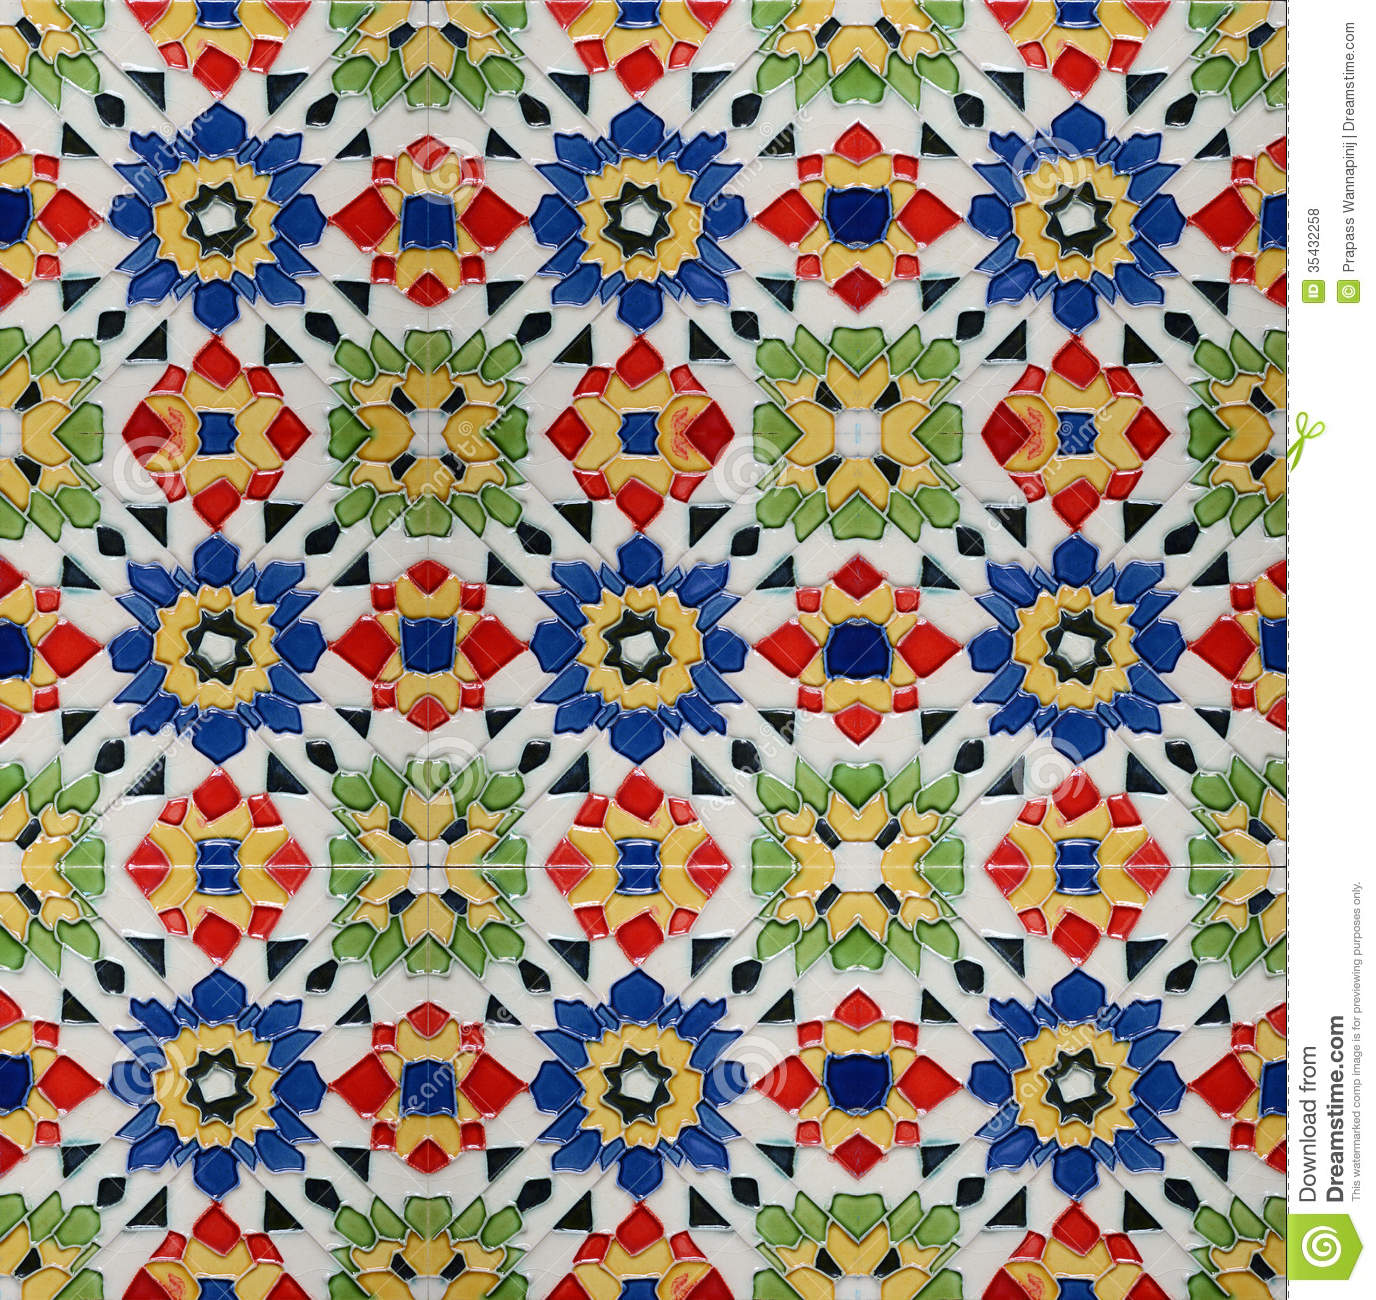 Spanich Moroccan Style Vintage Ceramic Tile Stock Photo